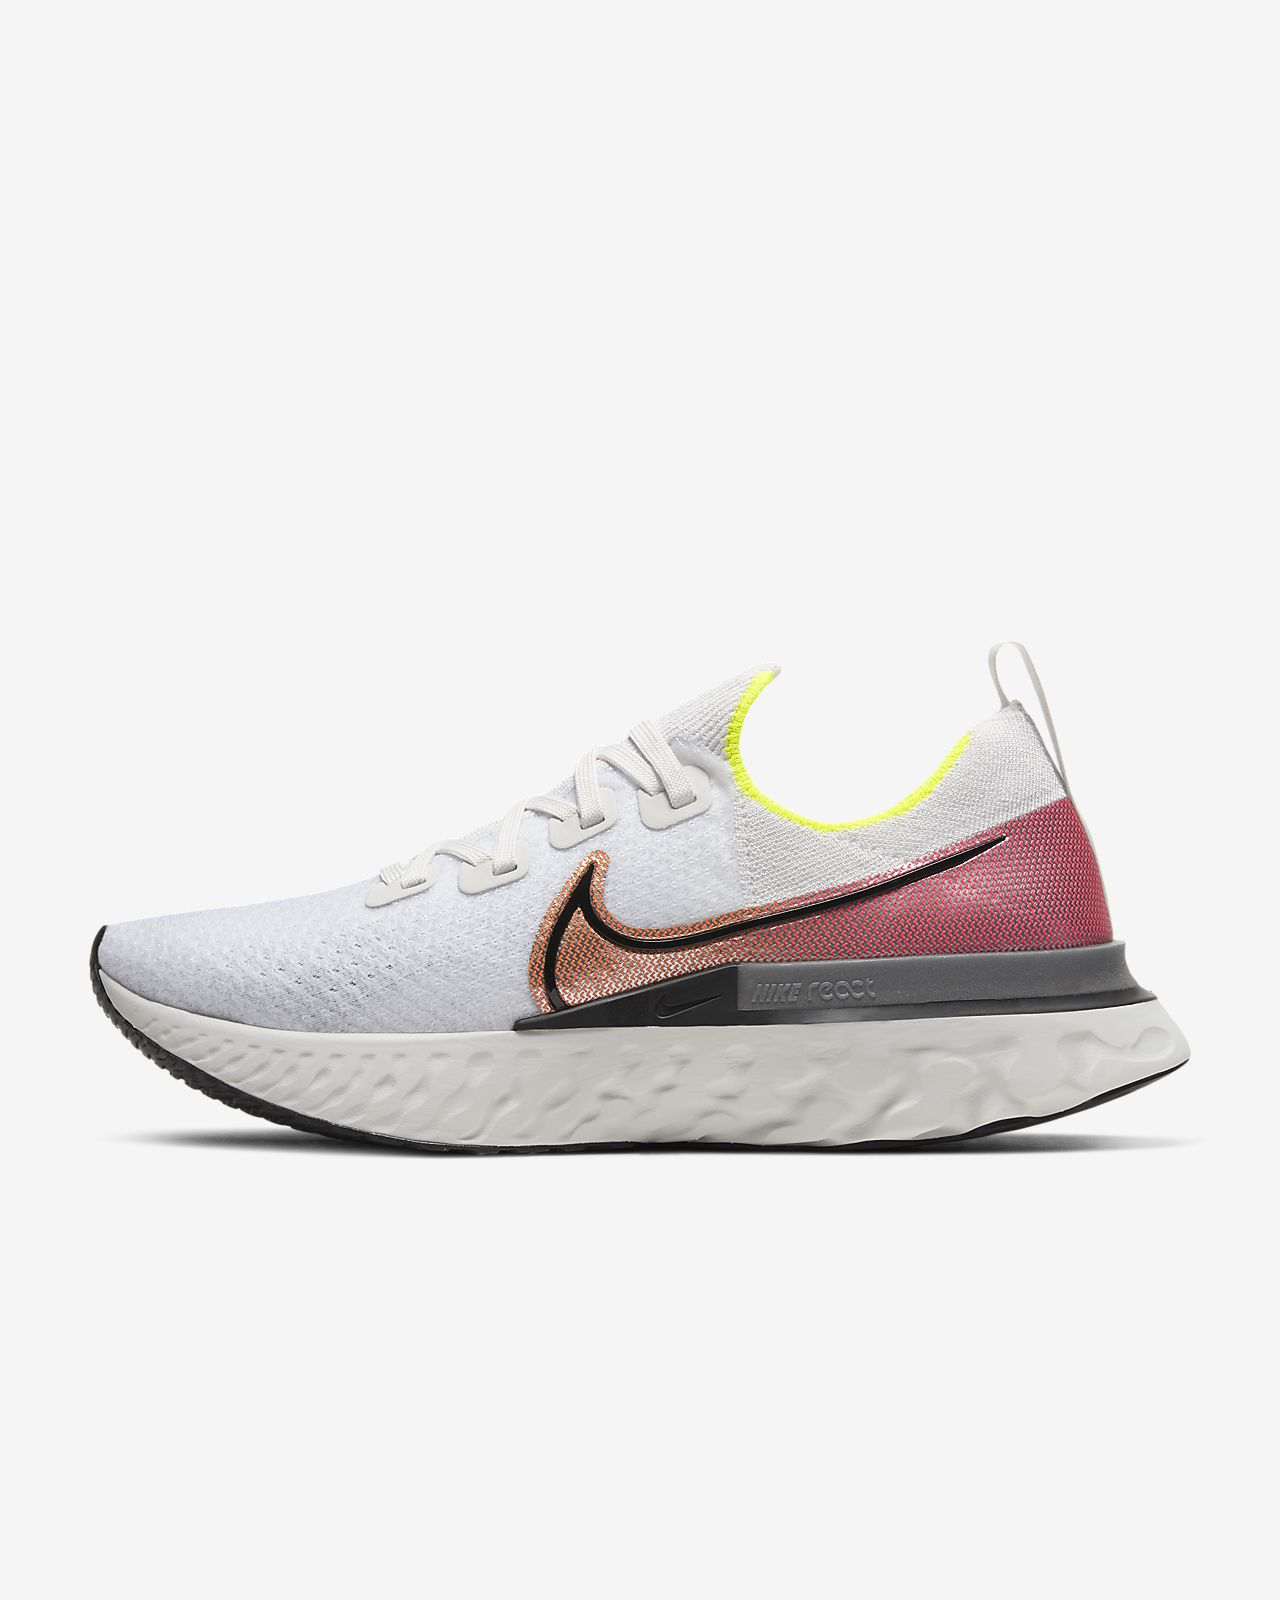 Nike React Infinity Run Flyknit 男款跑鞋